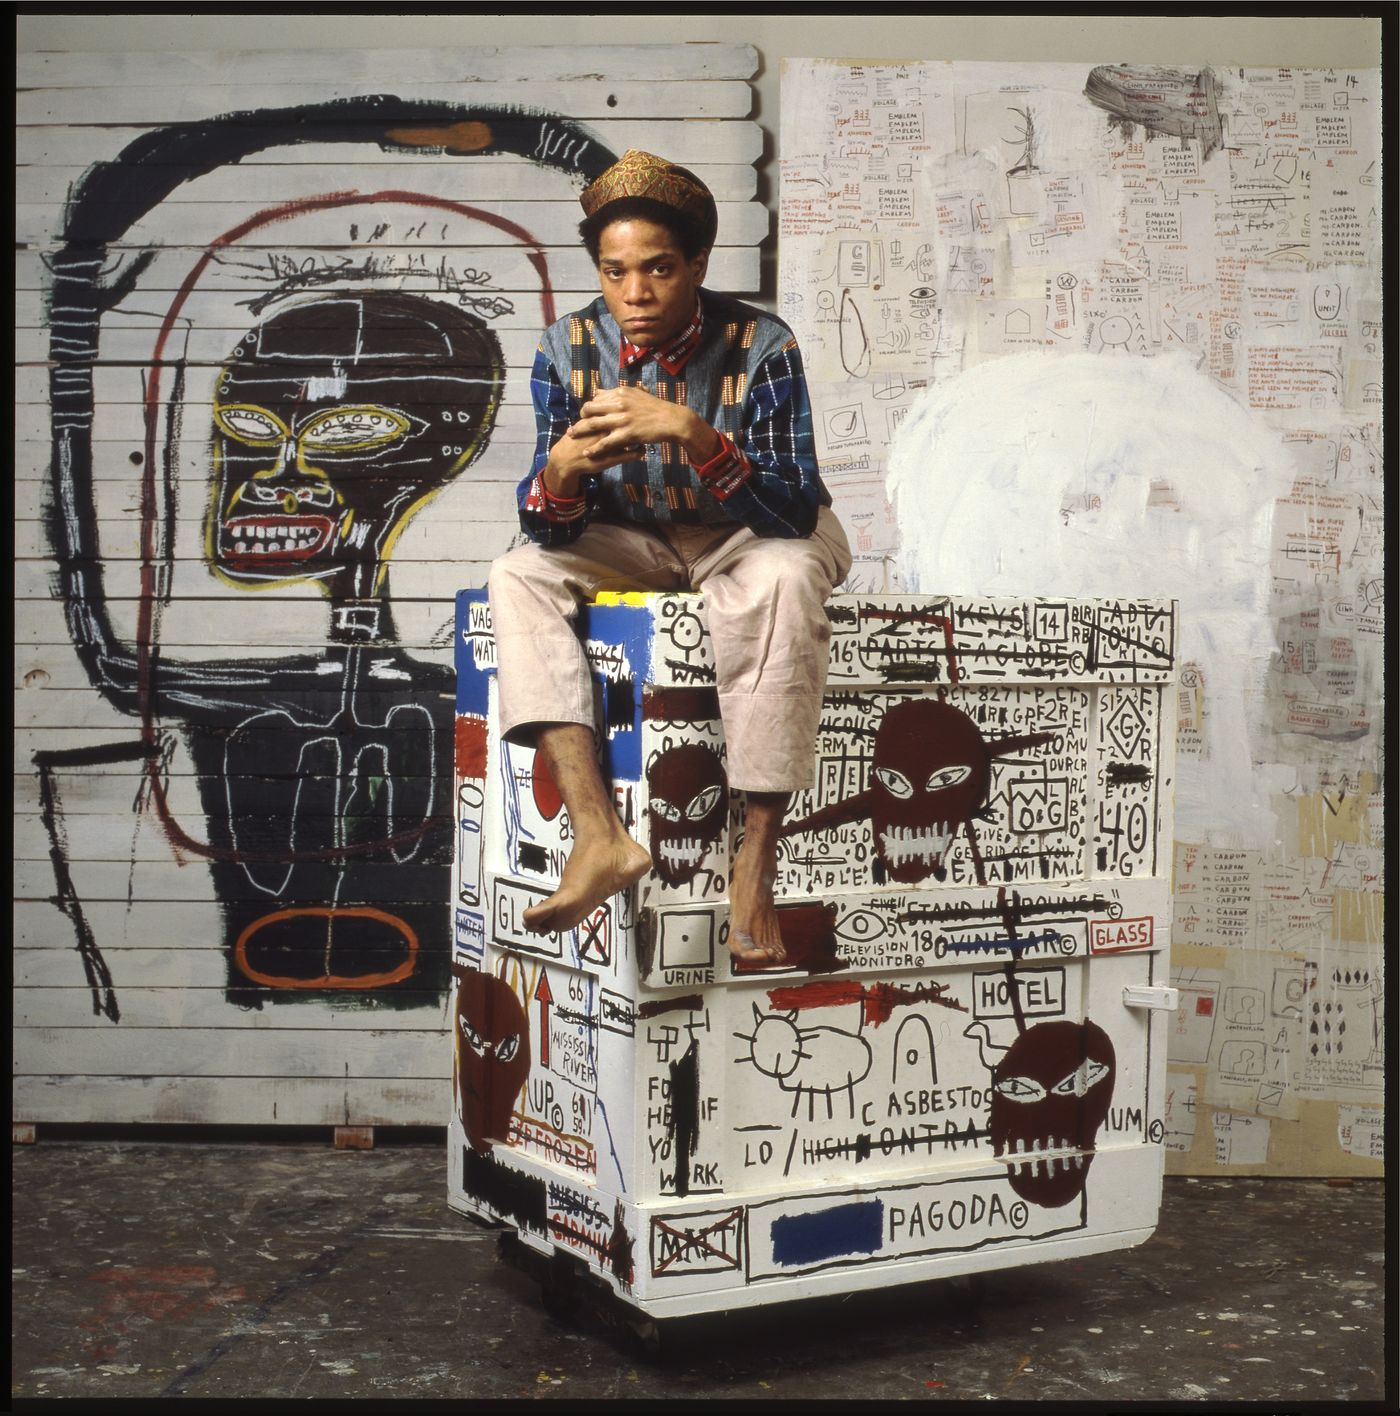 Lizzie Himmel is a New York-based photographer who shot the iconic picture of Jean-Michel Basquiat and 'Flexible', 1984. Phillips' Roselyn Mathews caught up with Himmel about her experiences in and around the artist's New York studio.